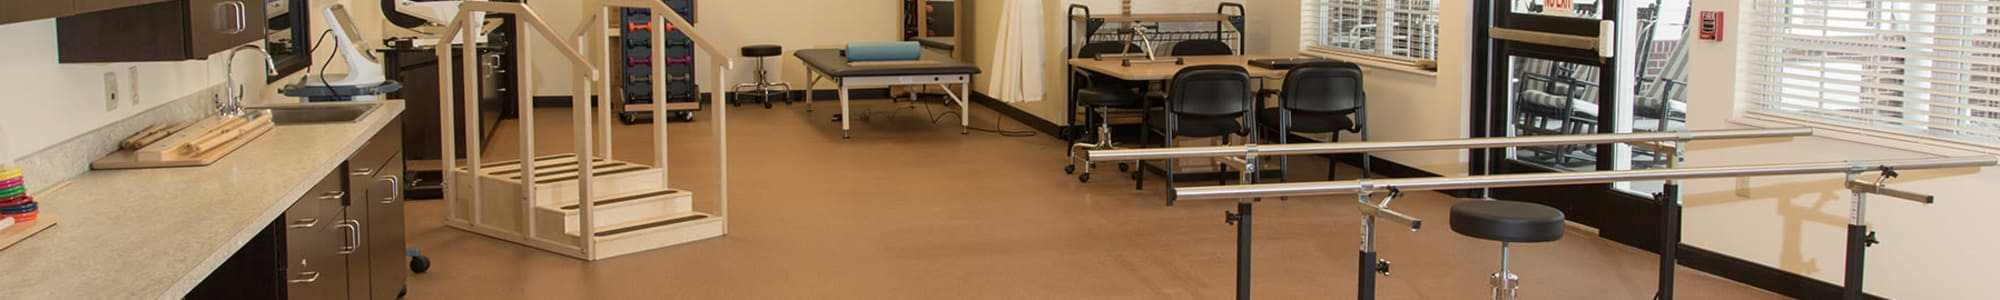 Physical therapy room at Tiffin in Tiffin, Ohio